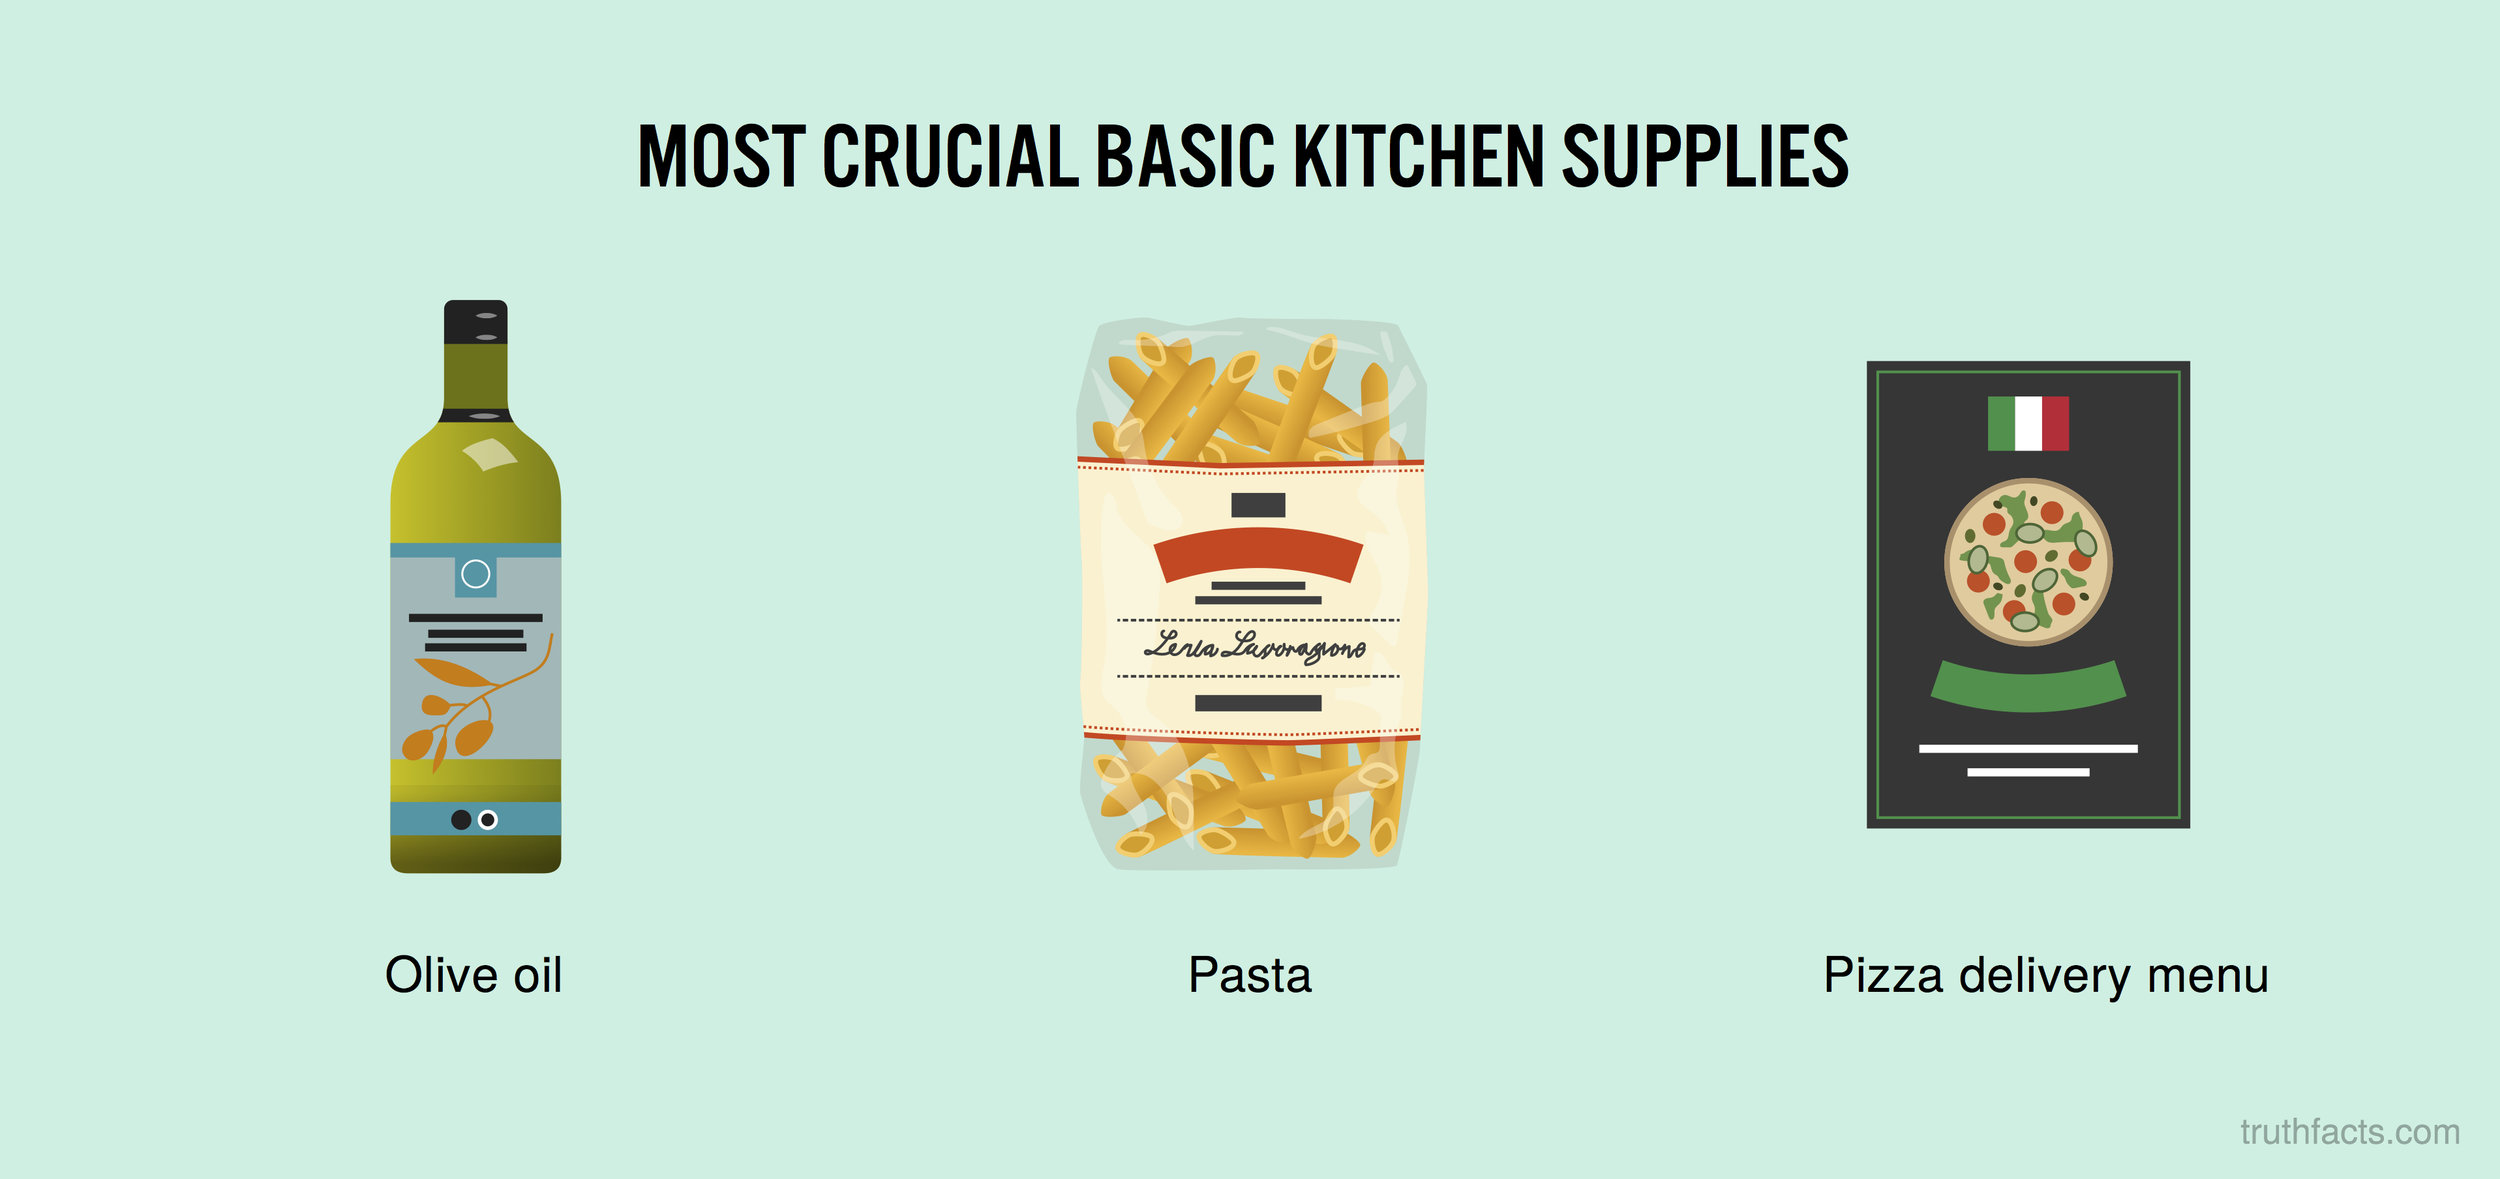 Most crucial basic kitchen supplies